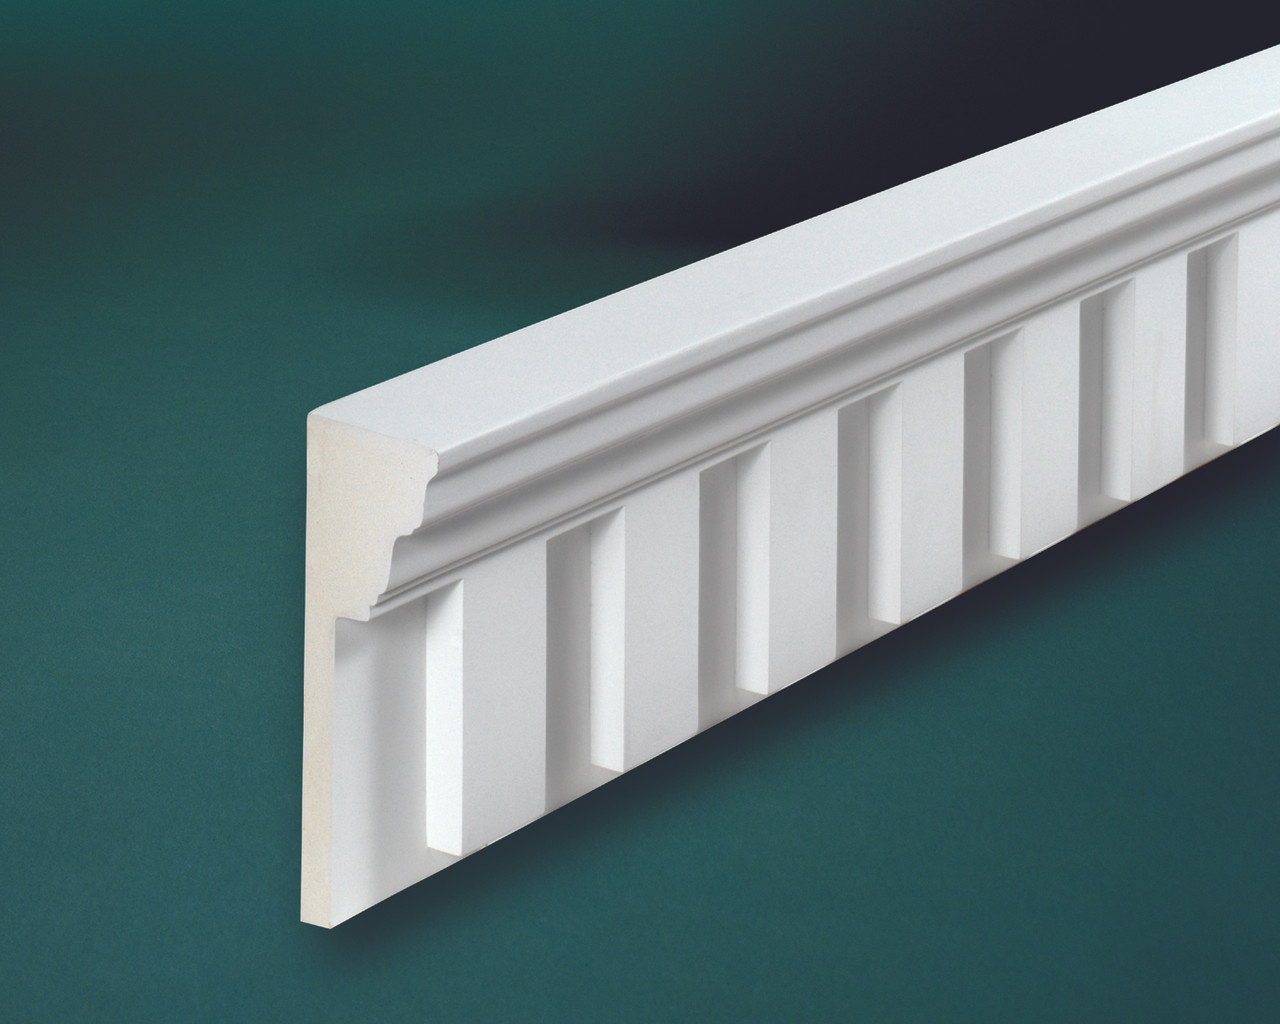 Mld336 16 for Fypon quick rail